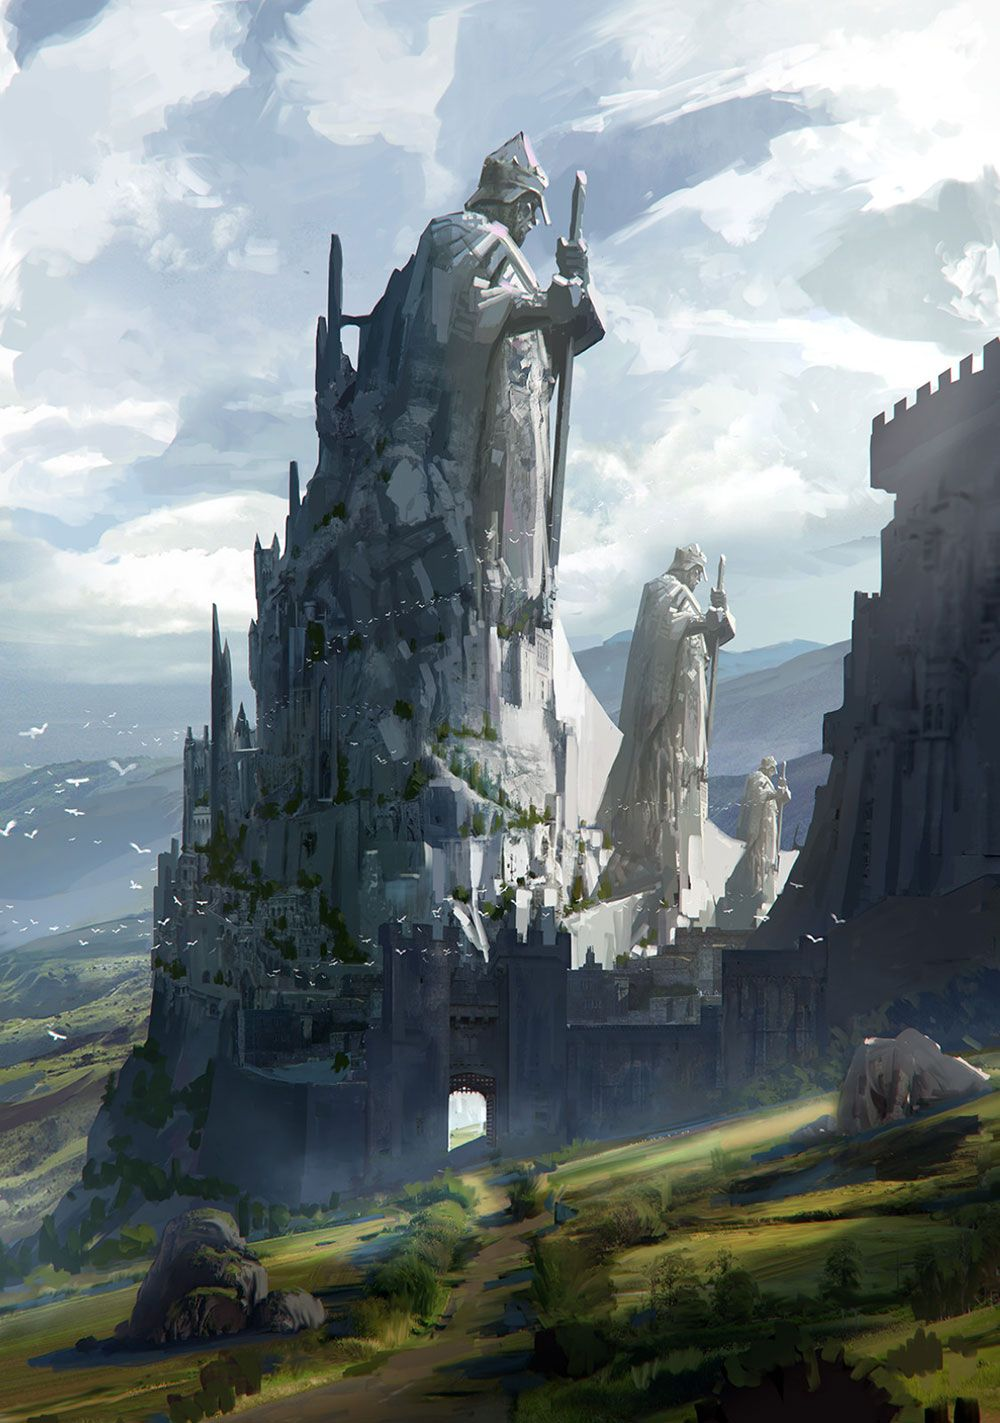 Fantasy Castles (16) - Design your way #castles